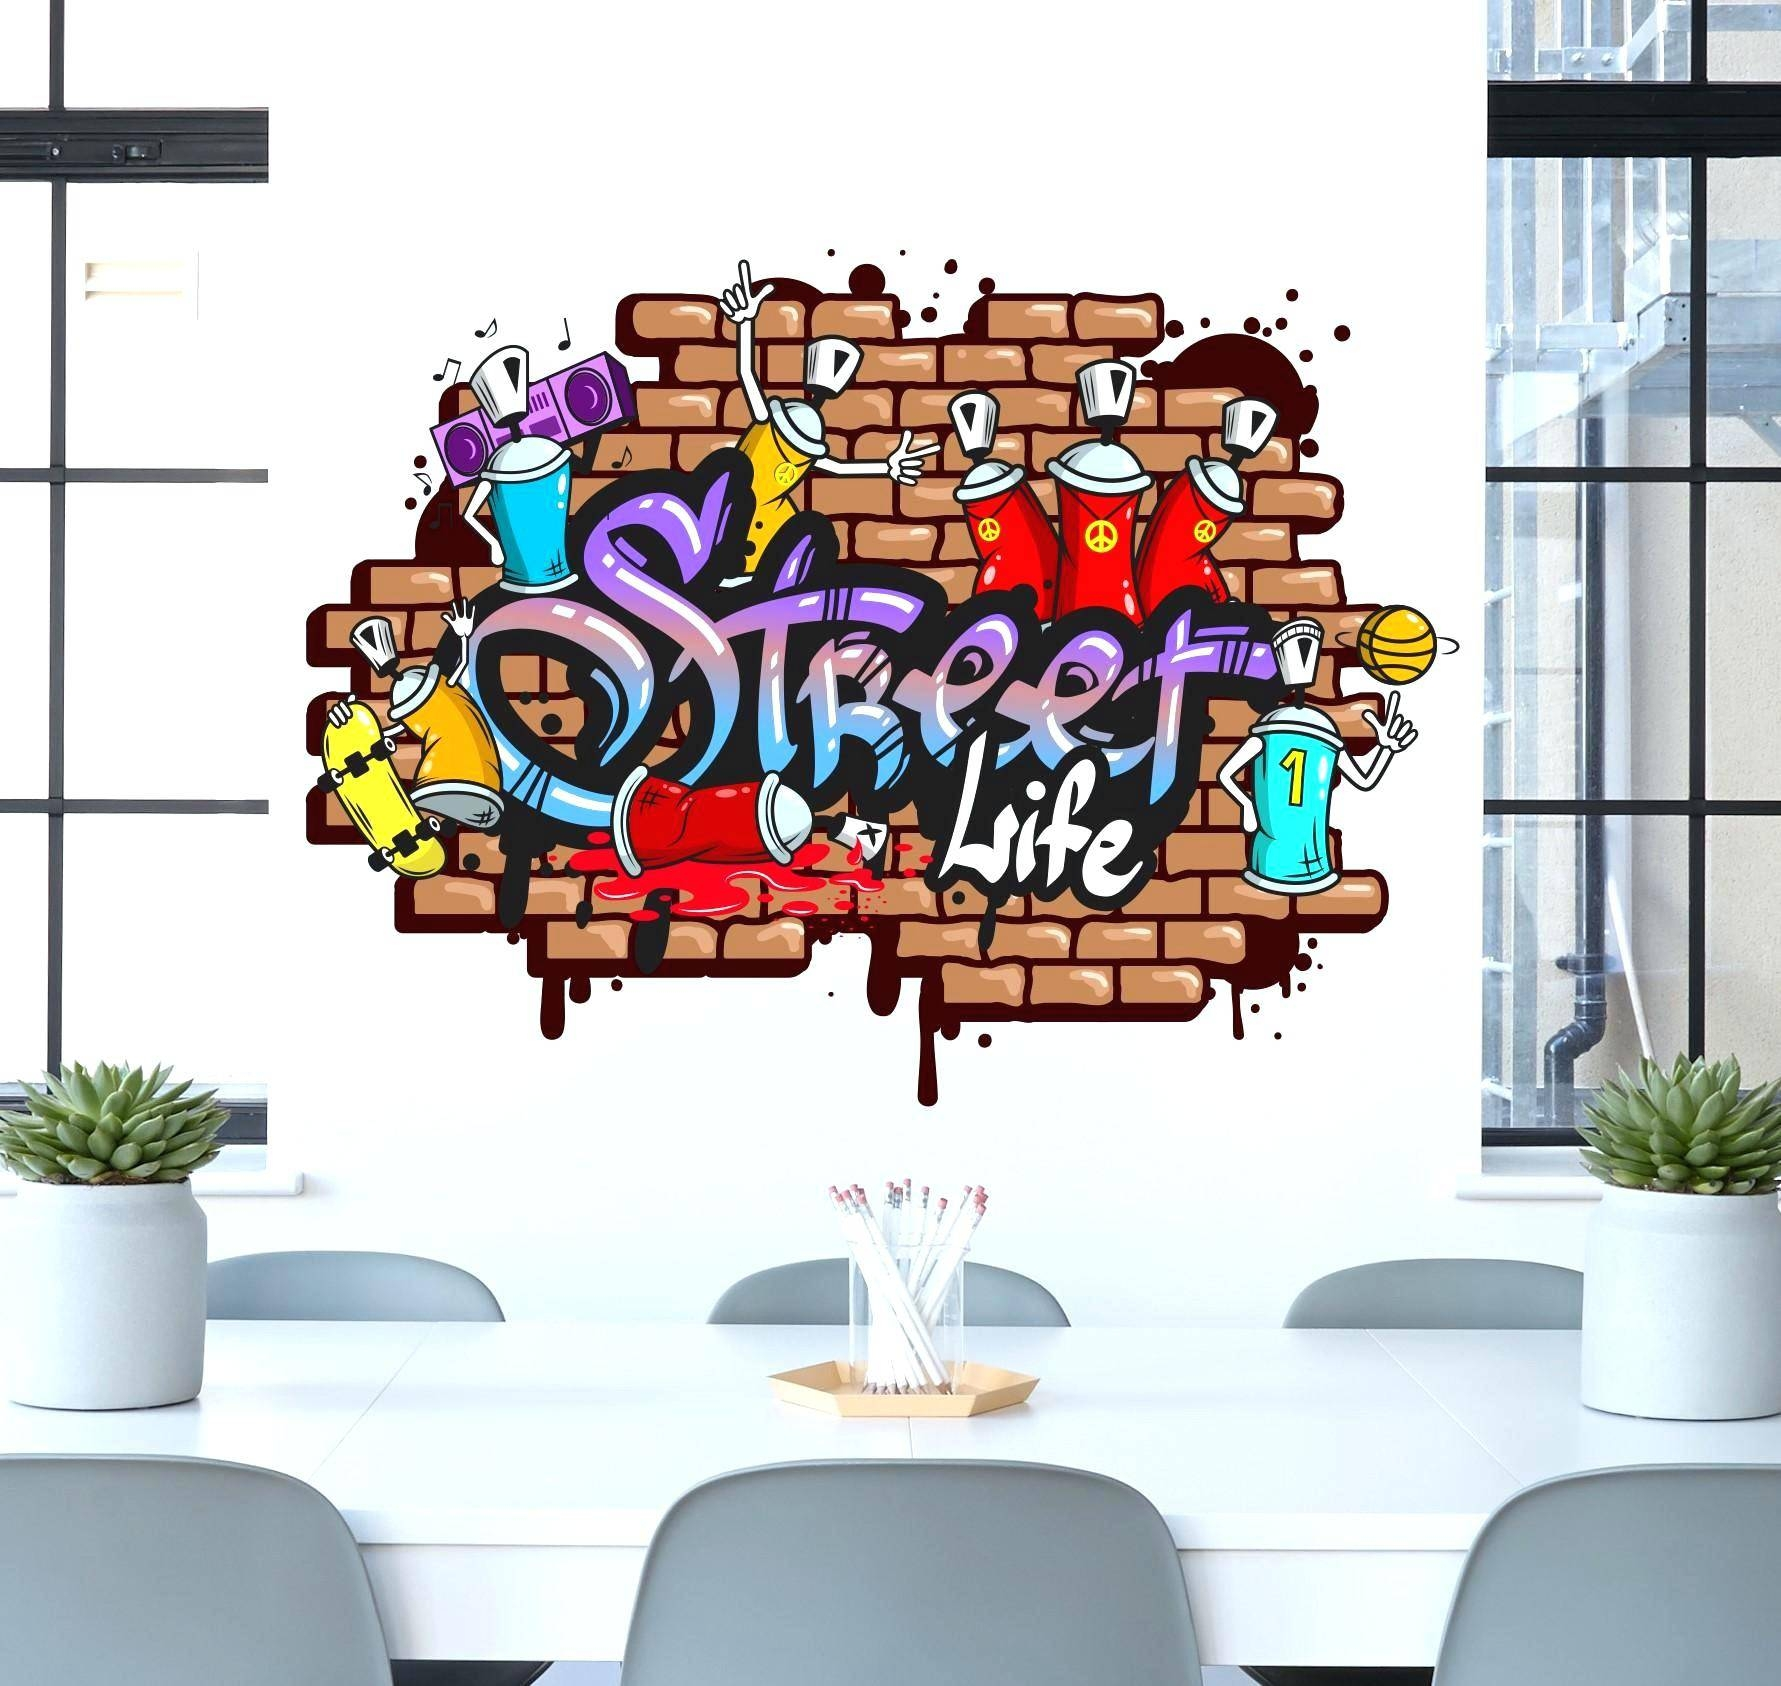 Graffiti Decals For Walls Personalised Graffiti Name Wall Decal Within Most Popular Graffiti Wall Art Stickers (Gallery 26 of 30)